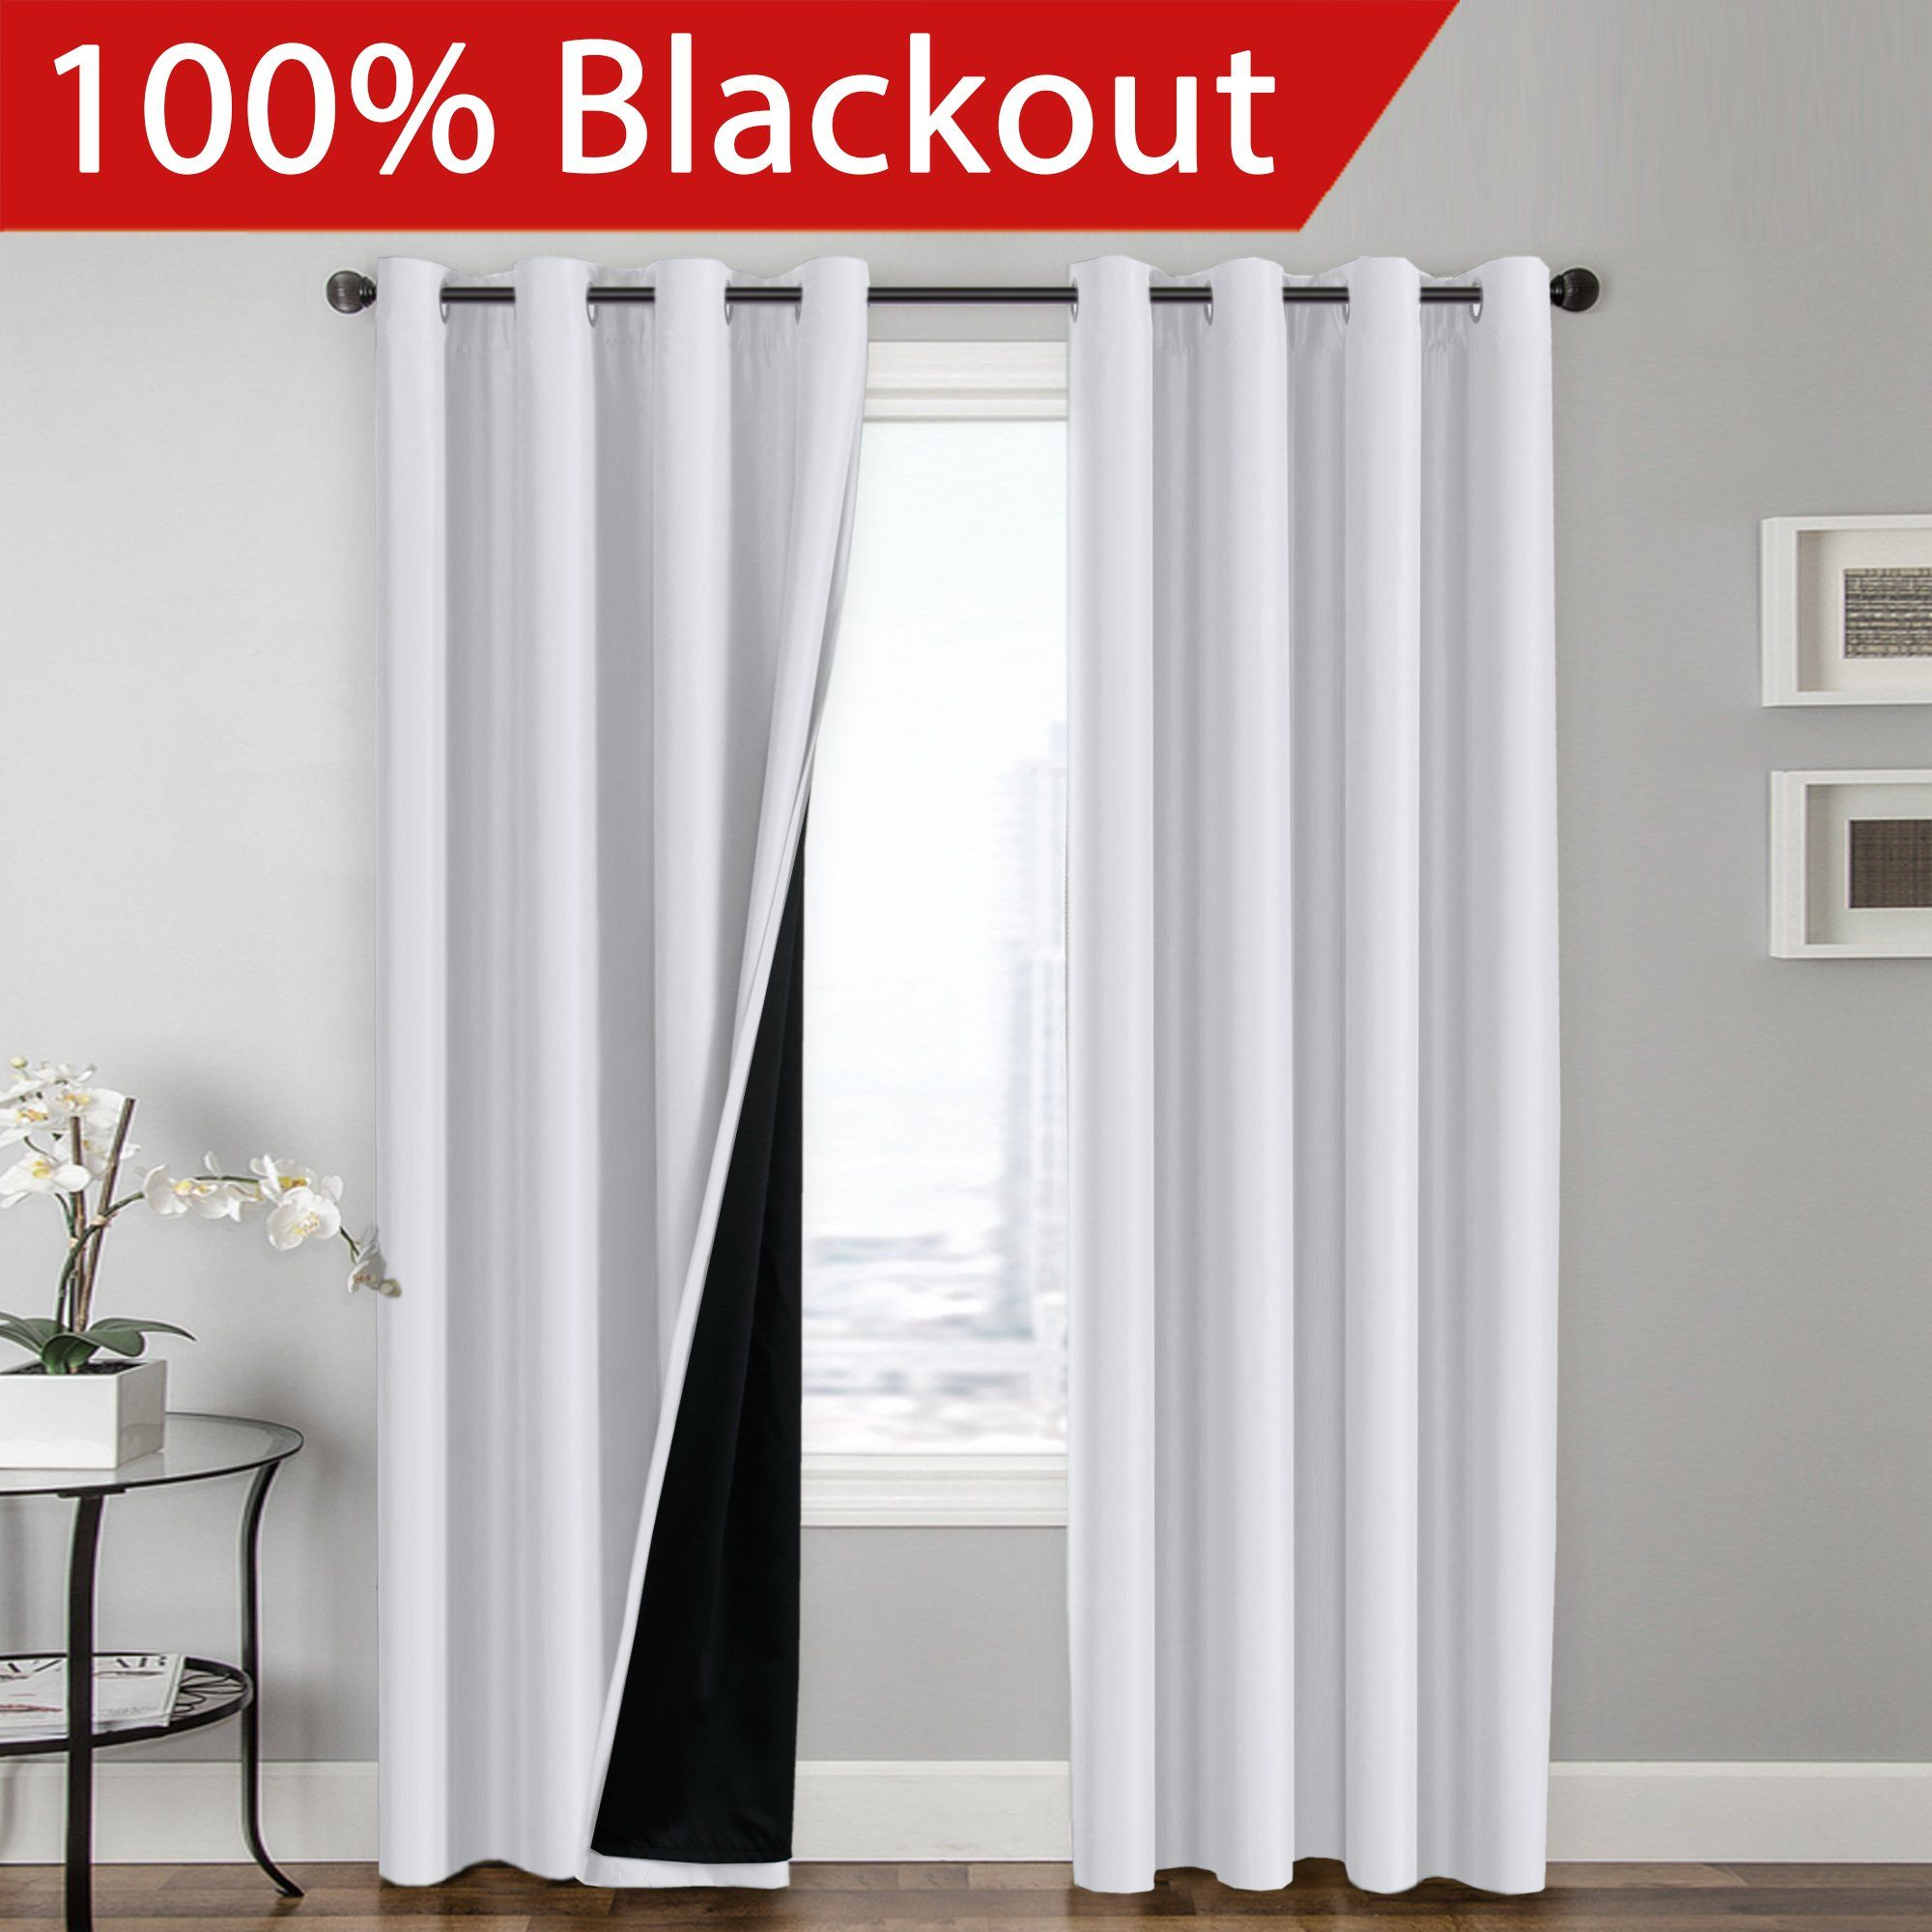 five solid from window on pure satin cloth door textile item home bedroom punching beautiful in fabric curtain color curtains garden